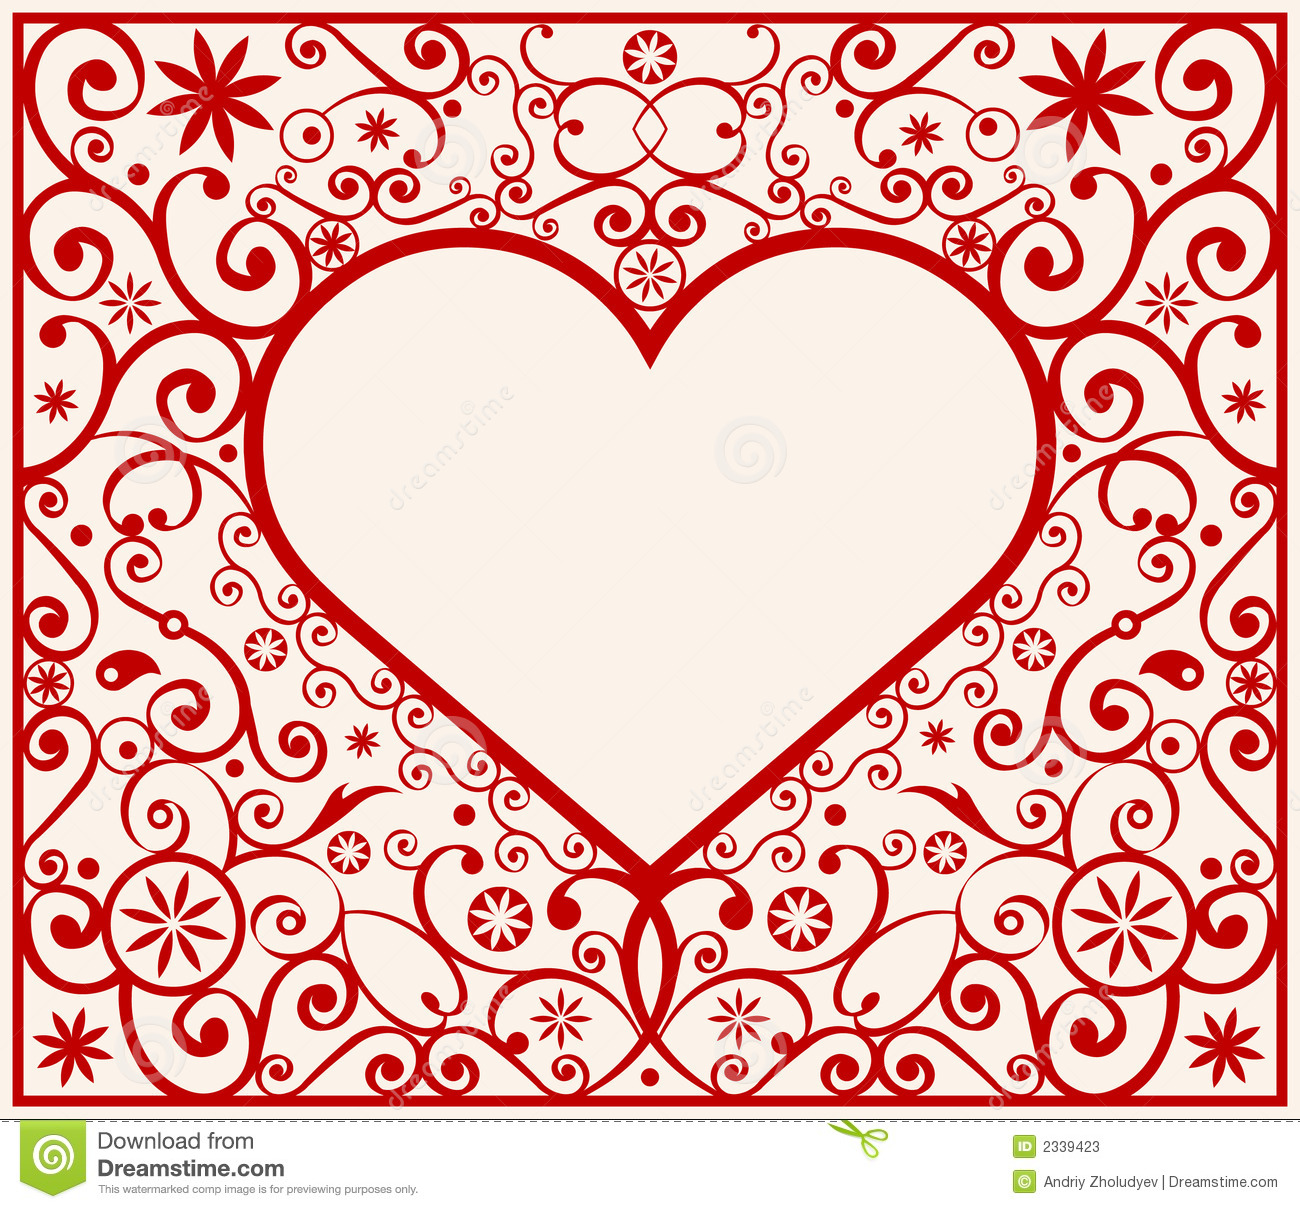 15 Vector Heart Border Images